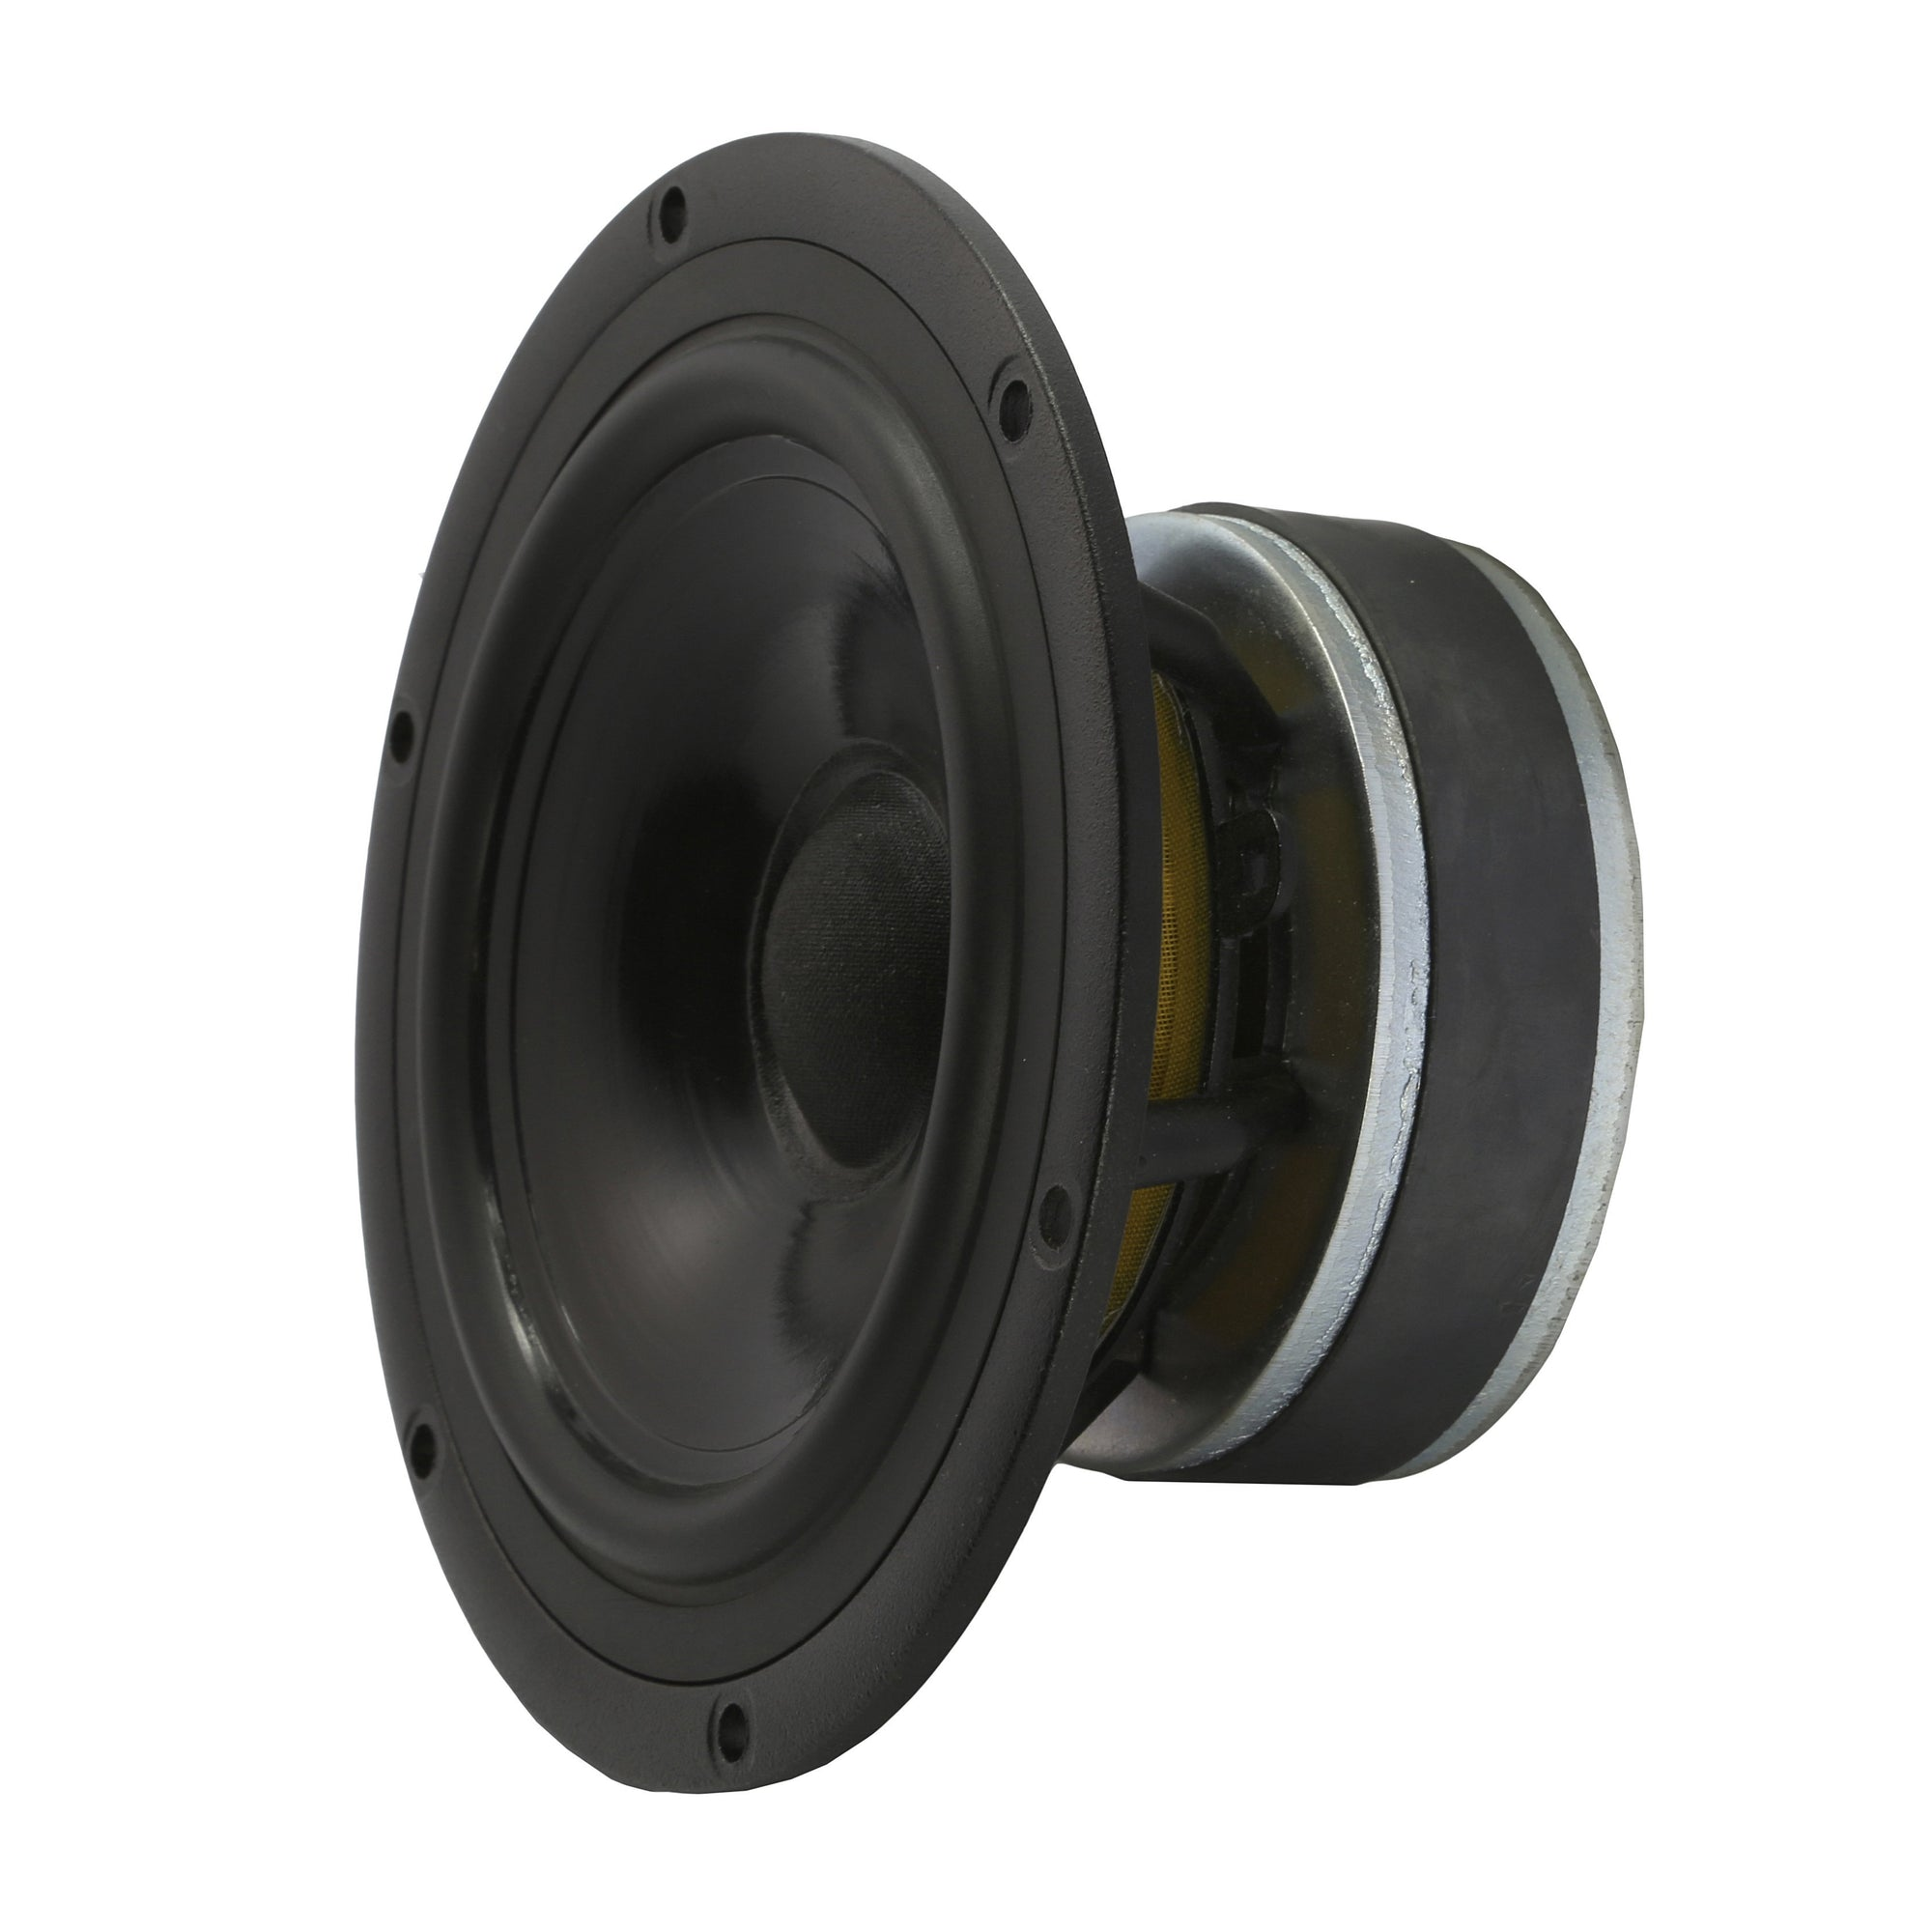 5-6 inch Bass / Midrange Speakers